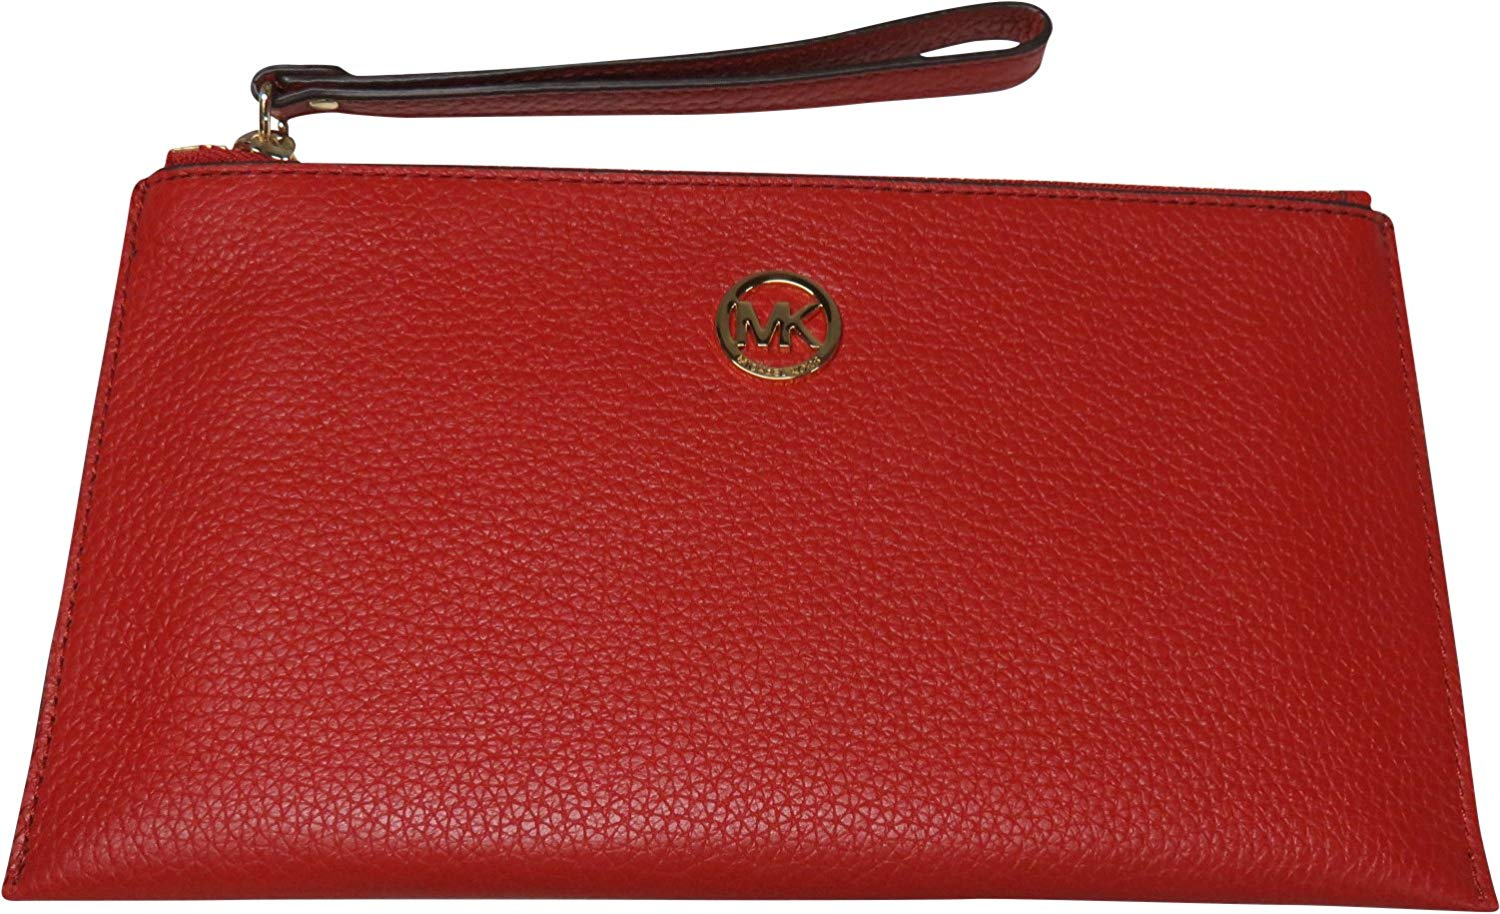 Micheal Kors Fulton Leather Large Zip Clutch Wristlet Red